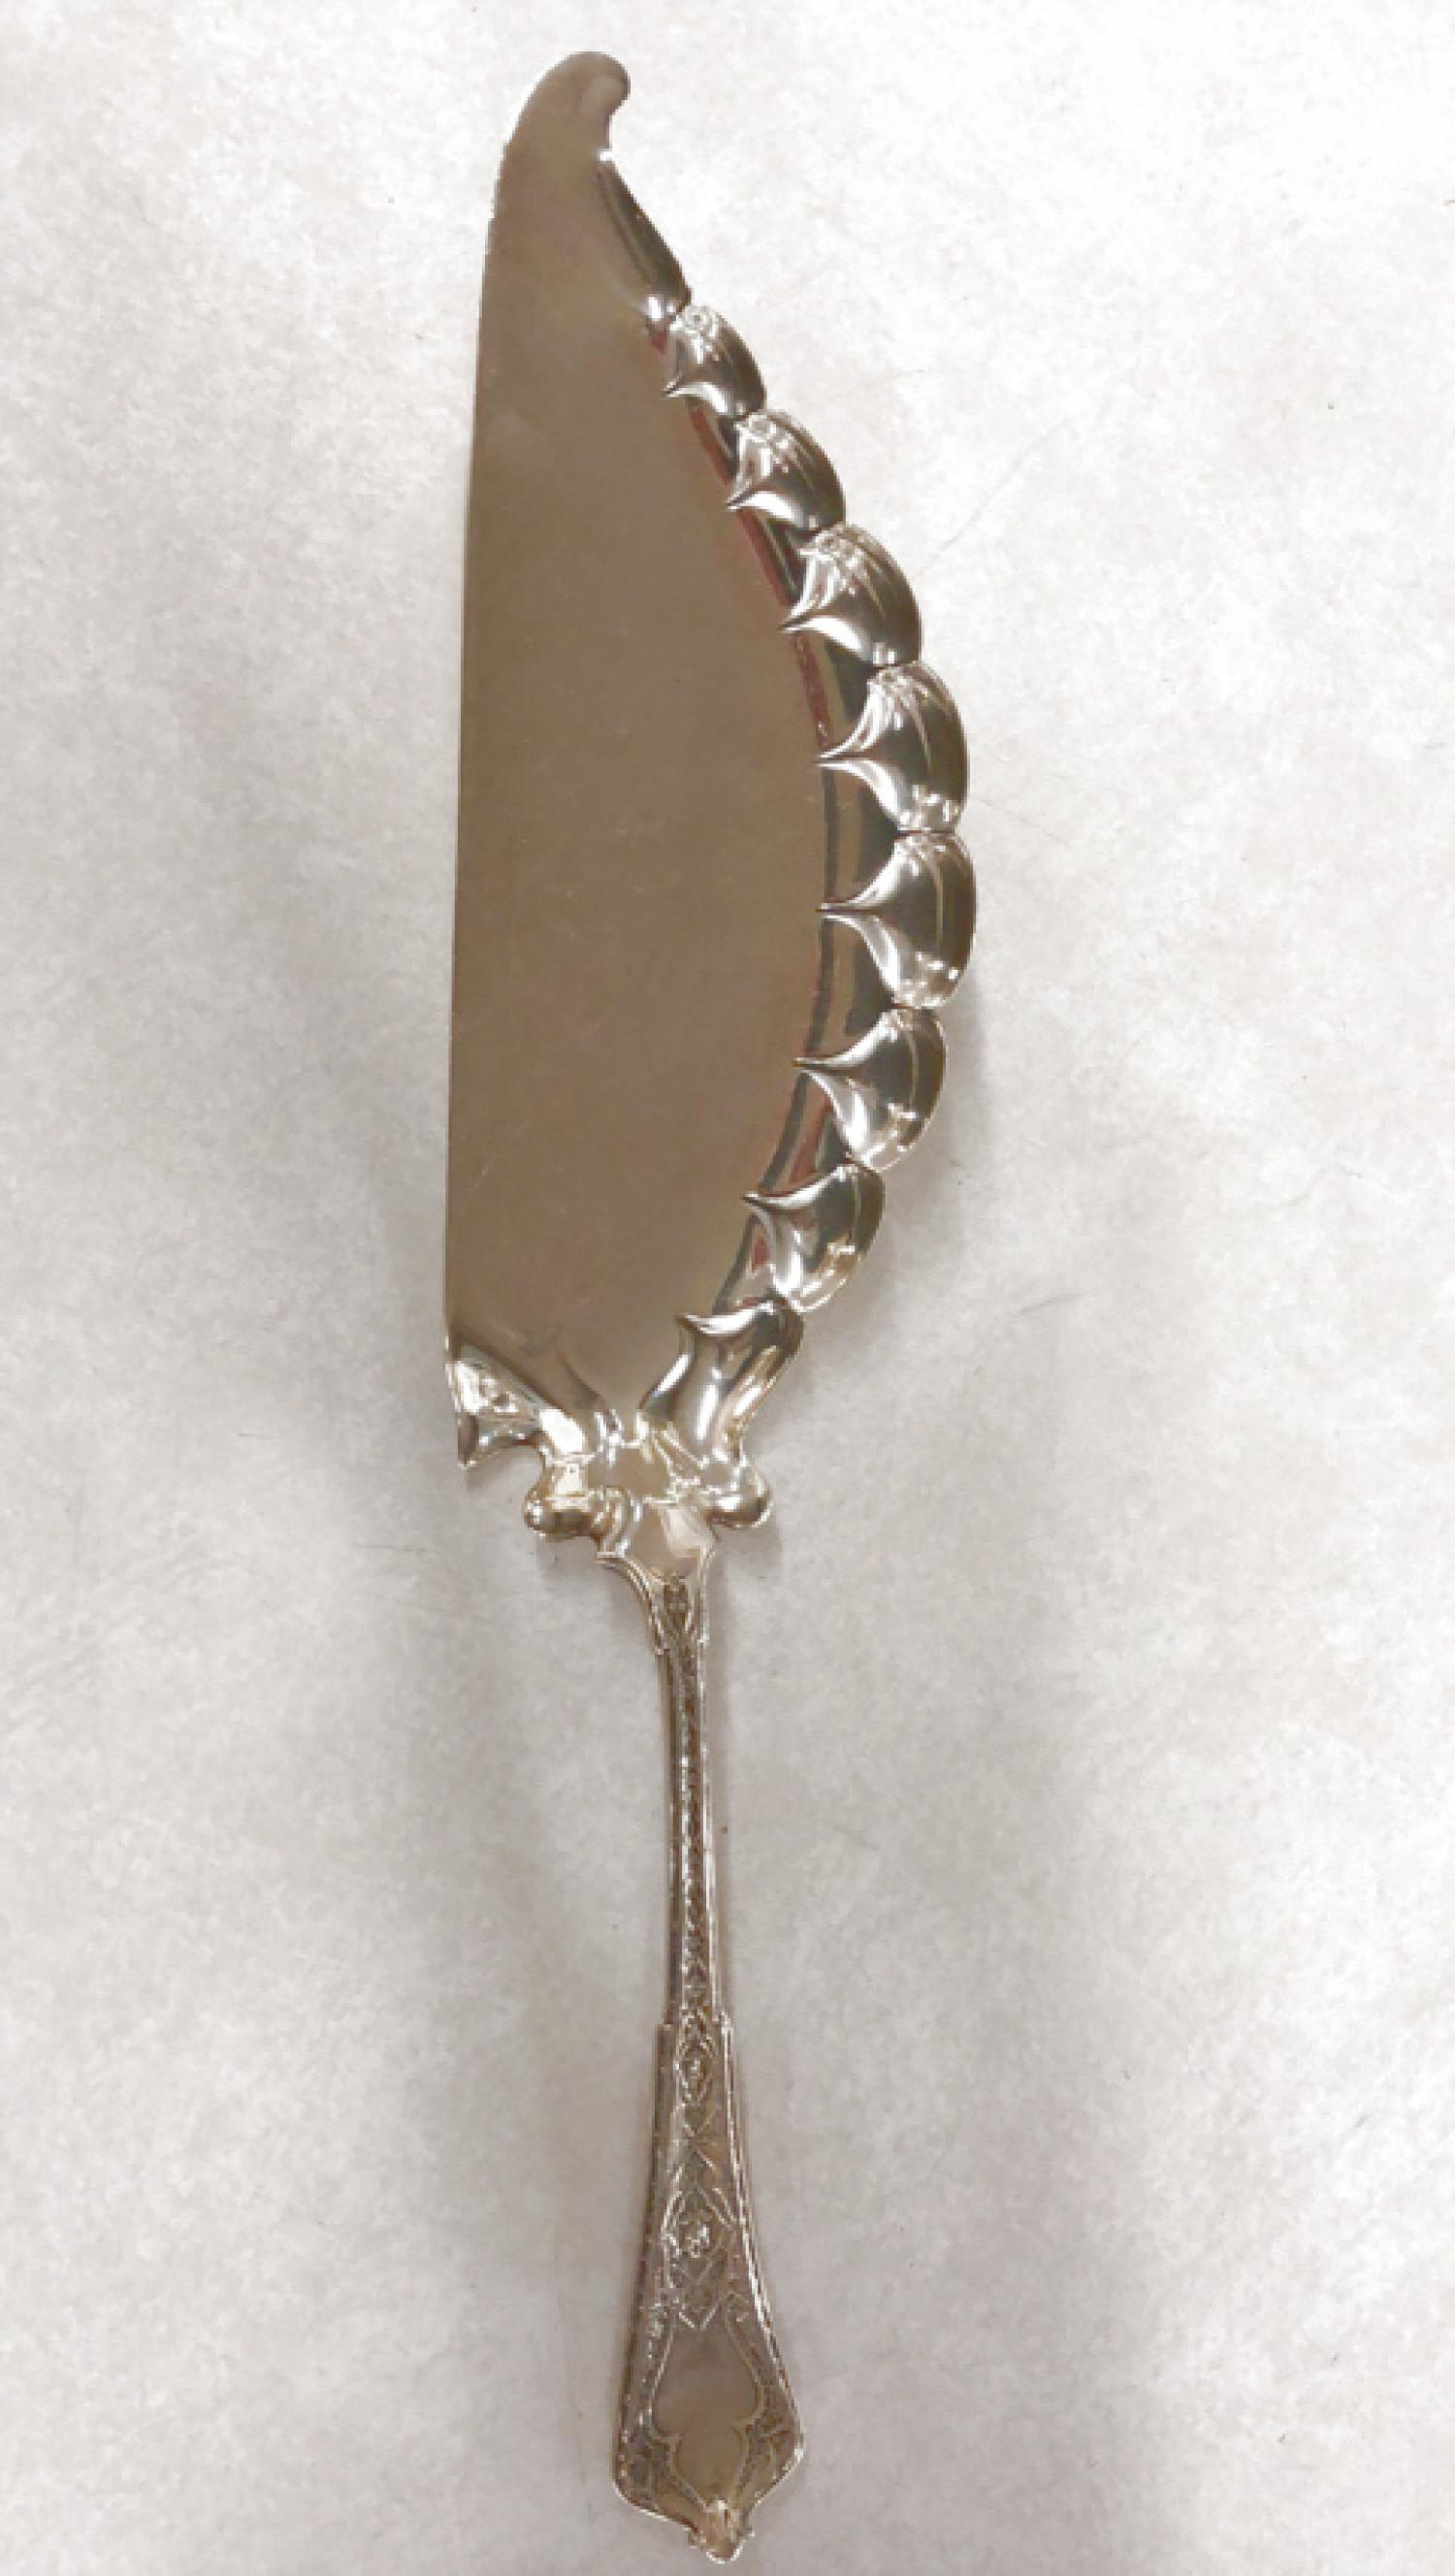 Antique Tiffany Co sterling silver fish server